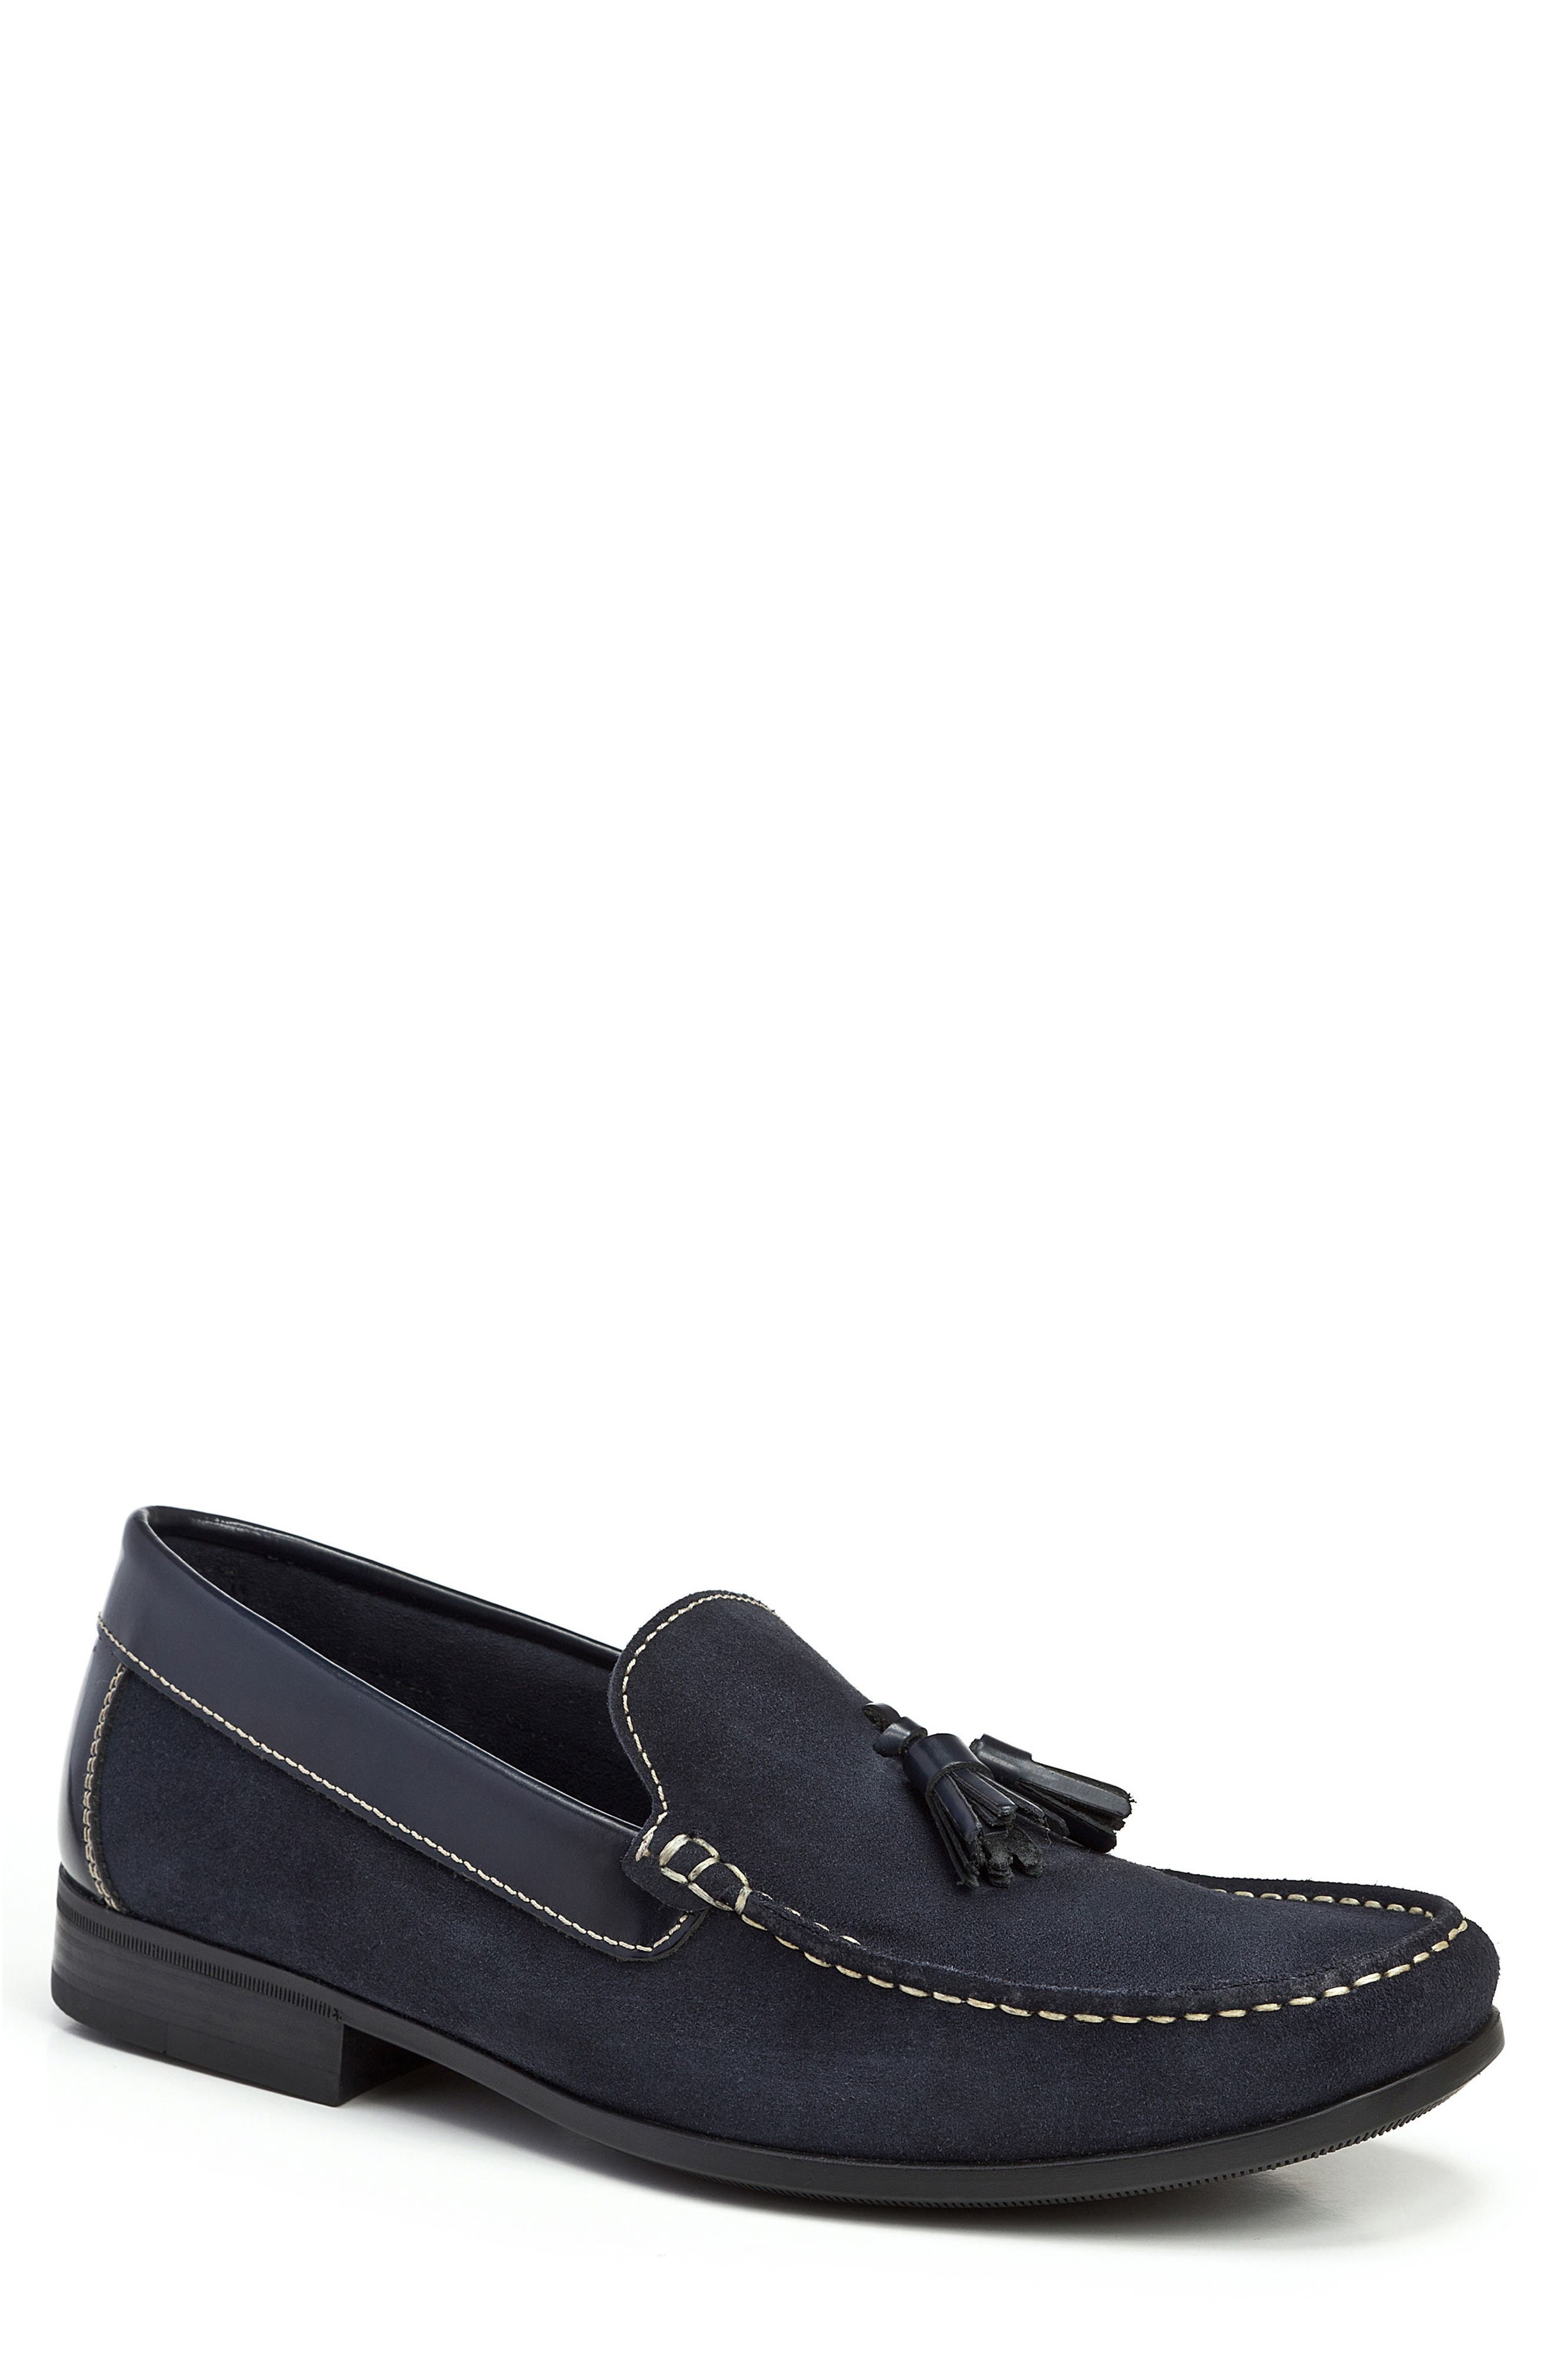 Hojas Tassel Loafer,                             Main thumbnail 1, color,                             Navy Leather